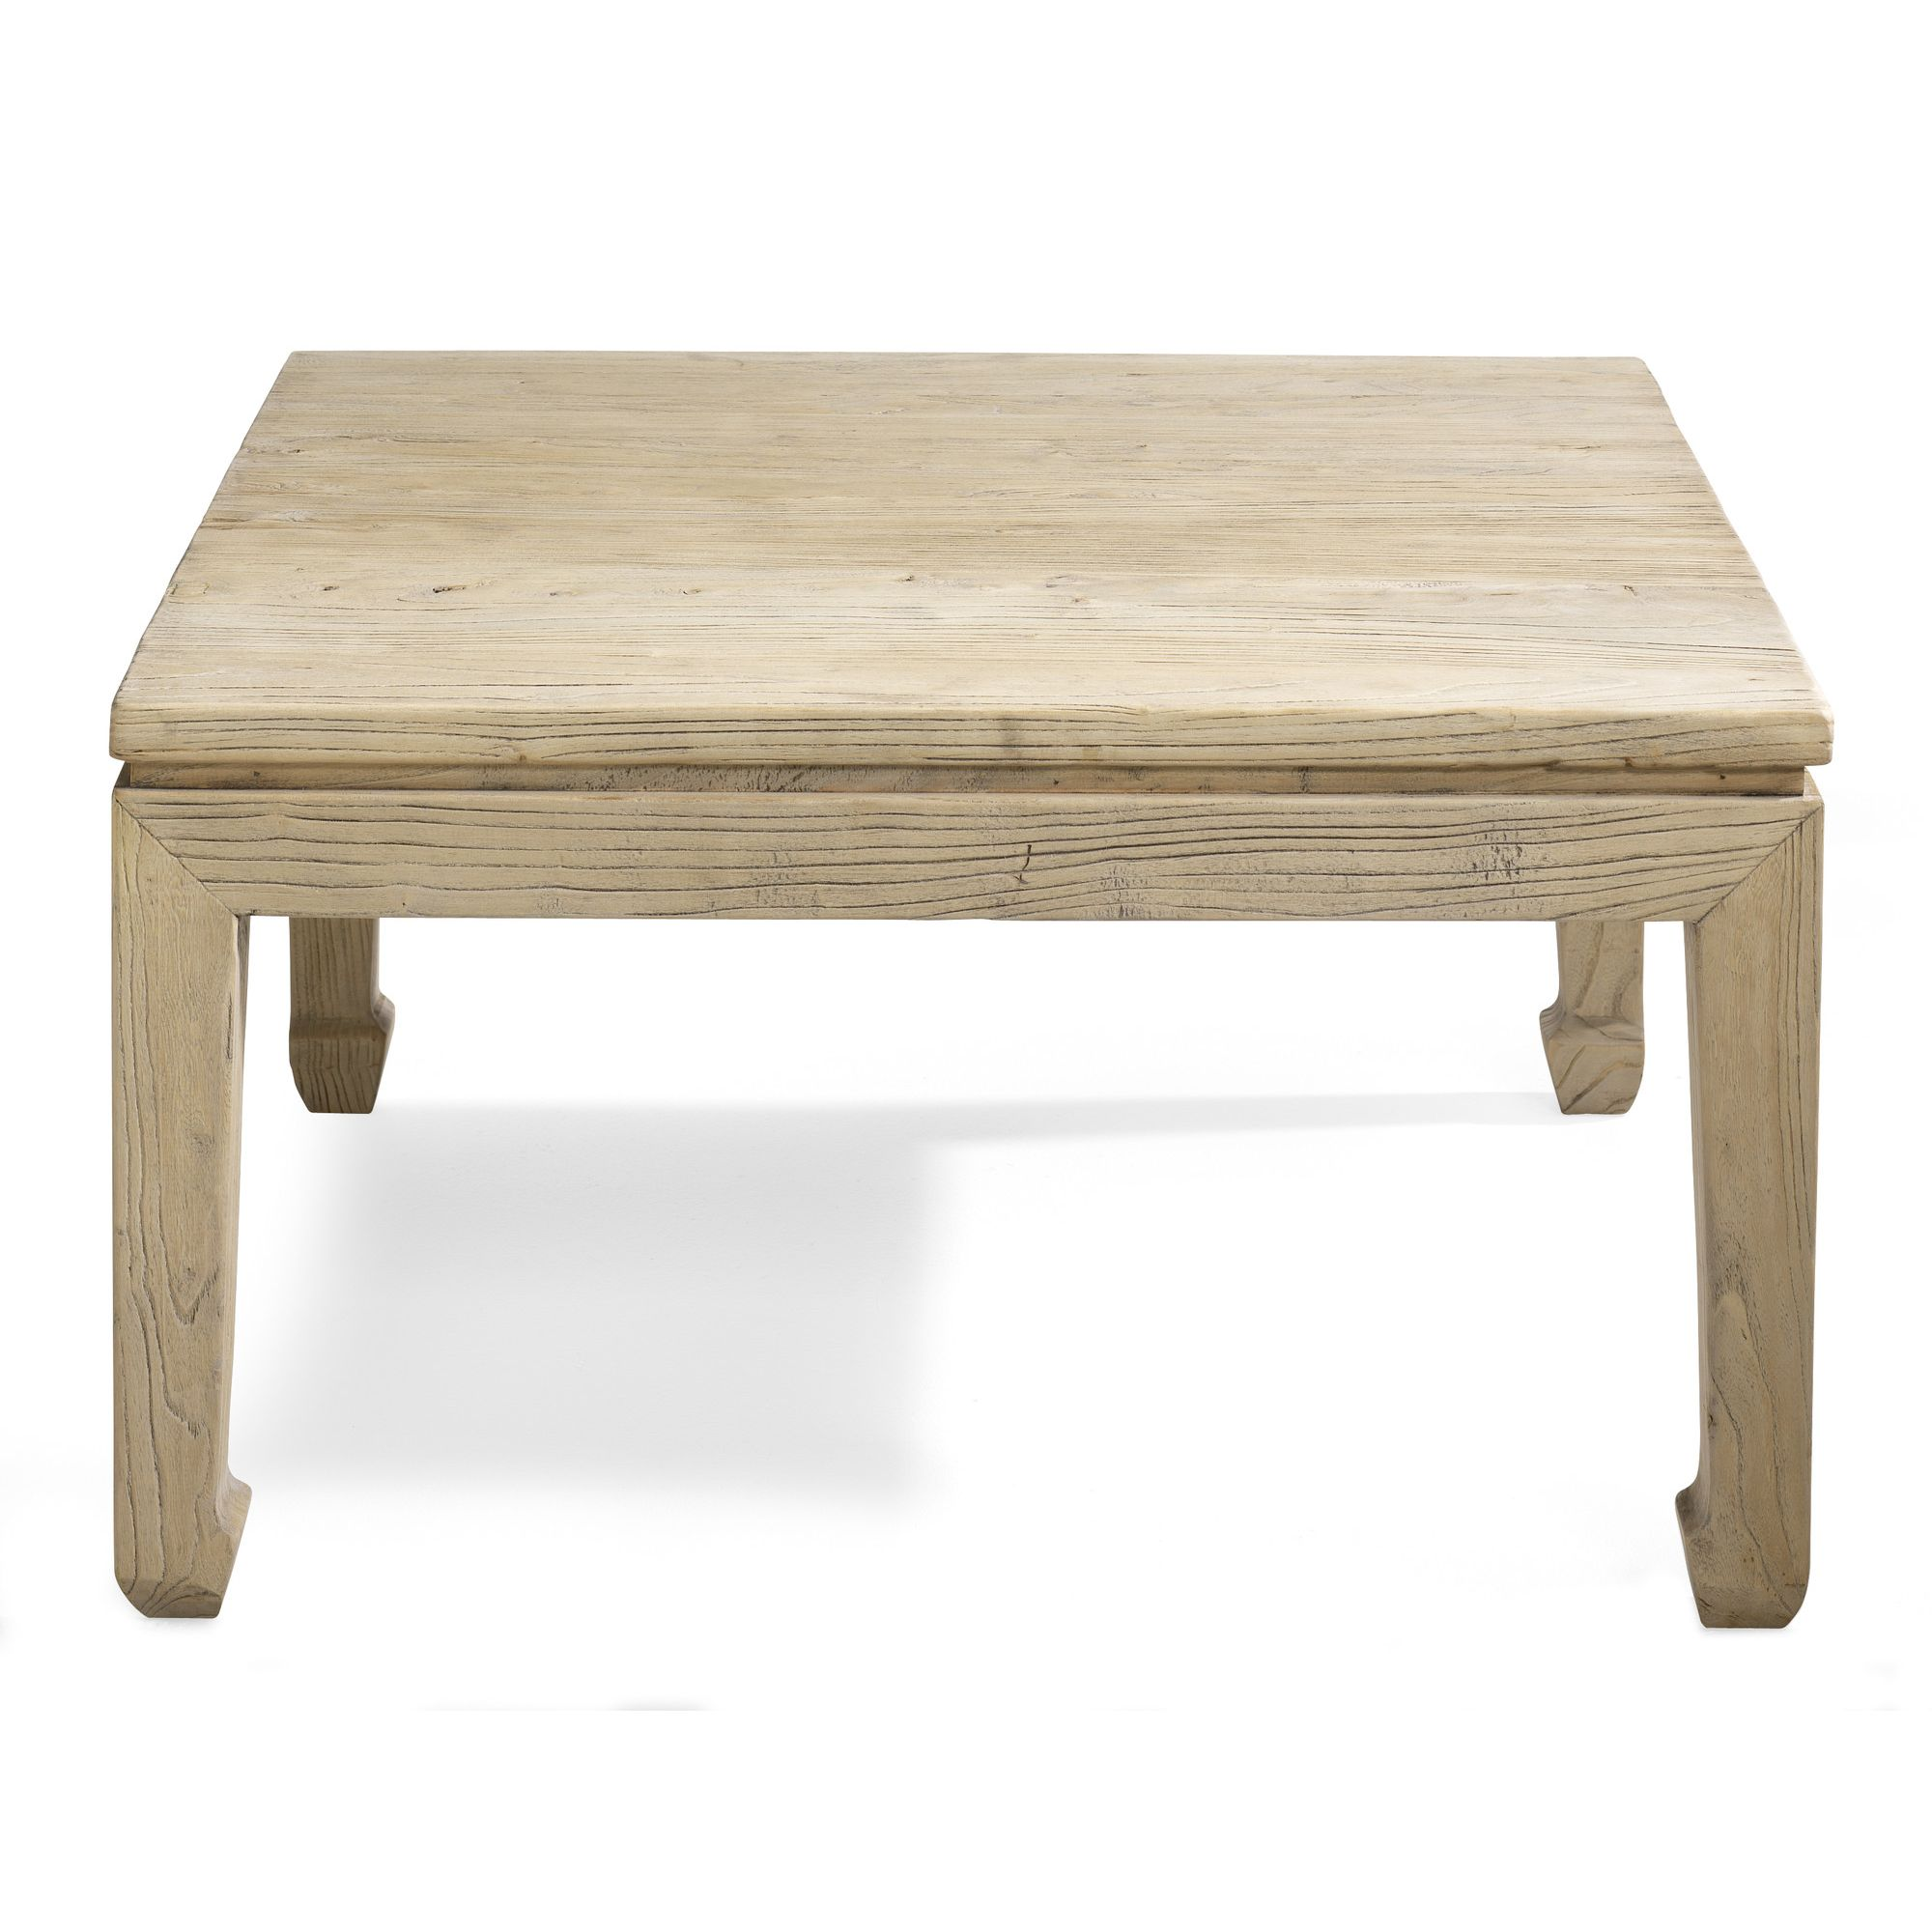 Shimu Chinese Country Furniture Square Coffee Table at Tesco Direct